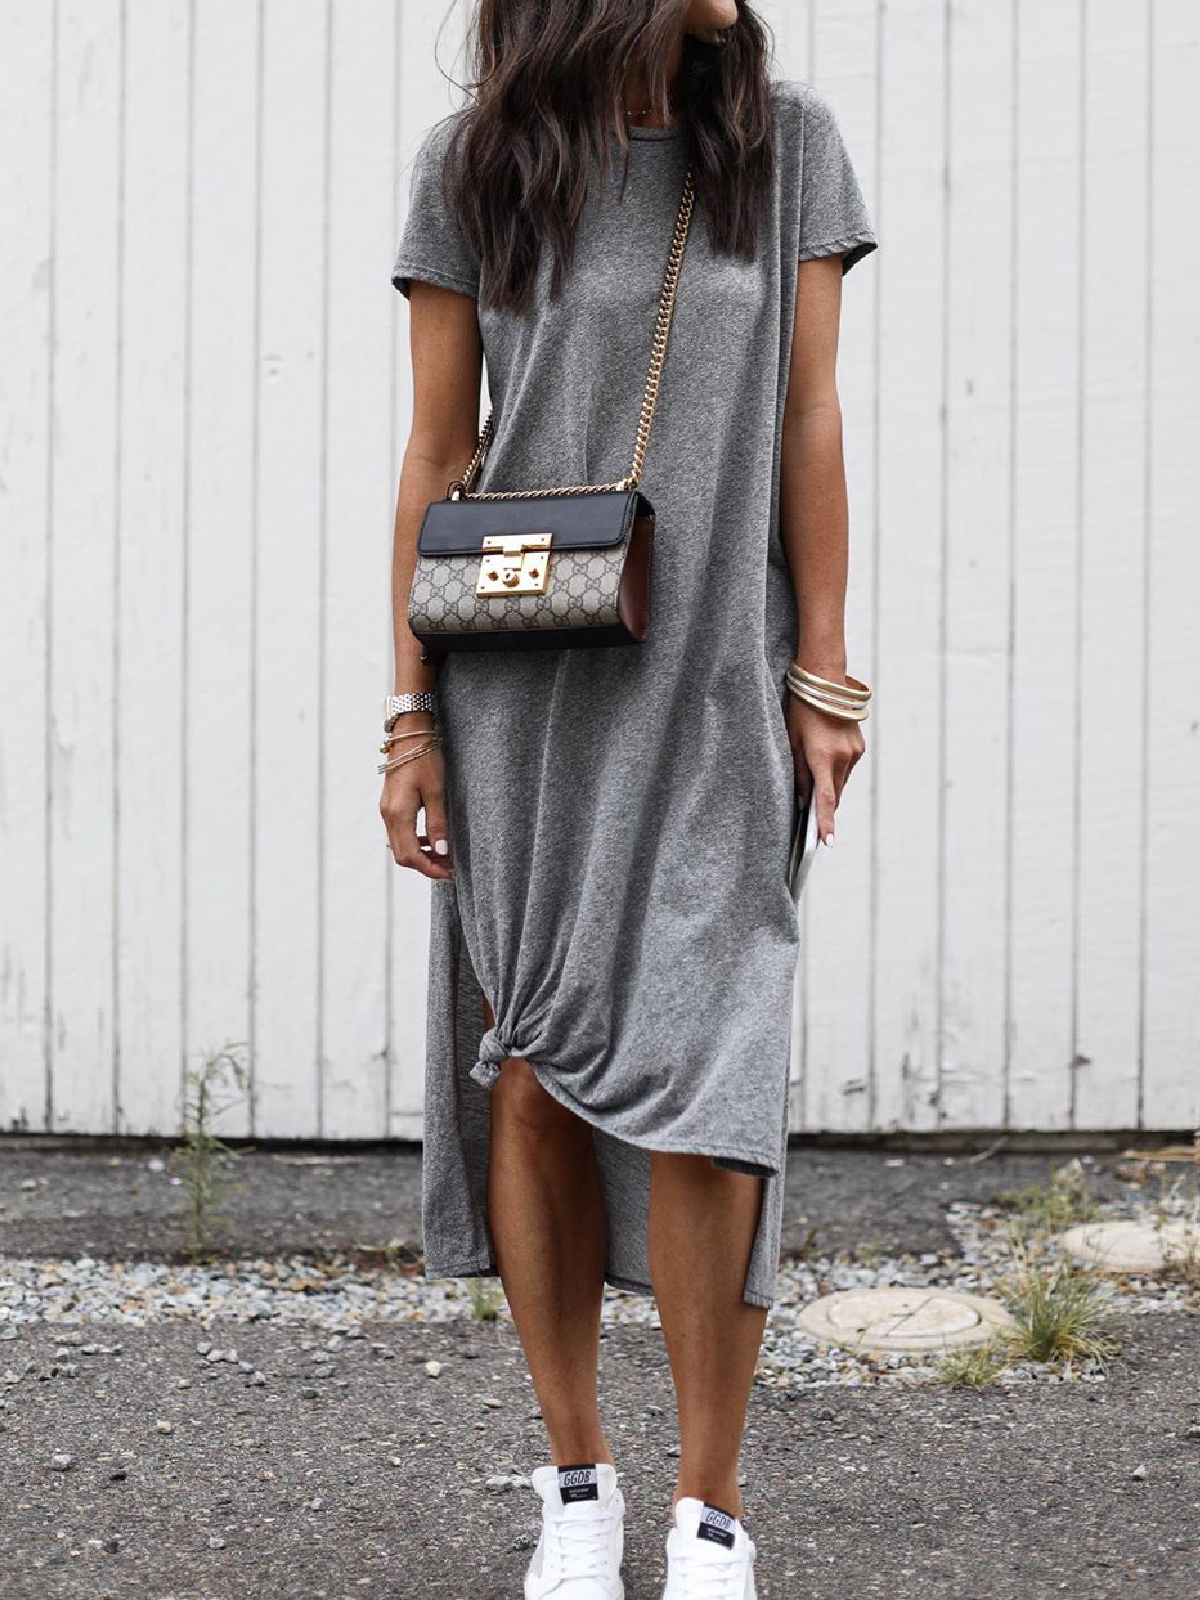 Gray Short Sleeve Cotton Blend Round Neck Causal Dresses Noracora Dress And Sneakers Outfit Casual Dress Outfits Maxi Dress Outfit Summer [ 1600 x 1200 Pixel ]